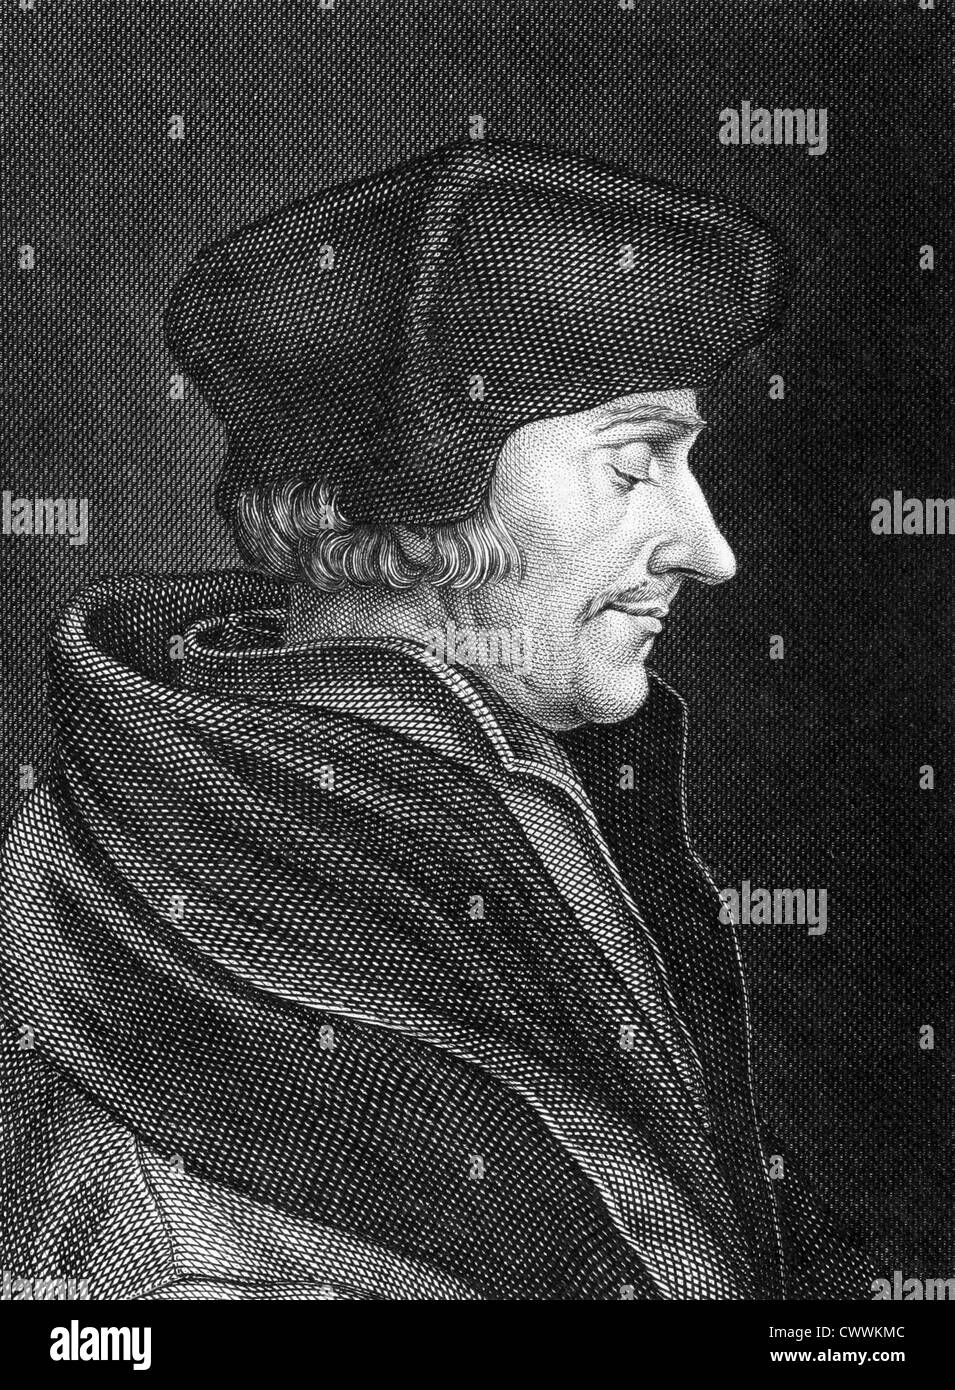 Desiderius Erasmus (1466-1536) on engraving from 1859. Dutch Renaissance humanist, priest, social critic, teacher - Stock Image